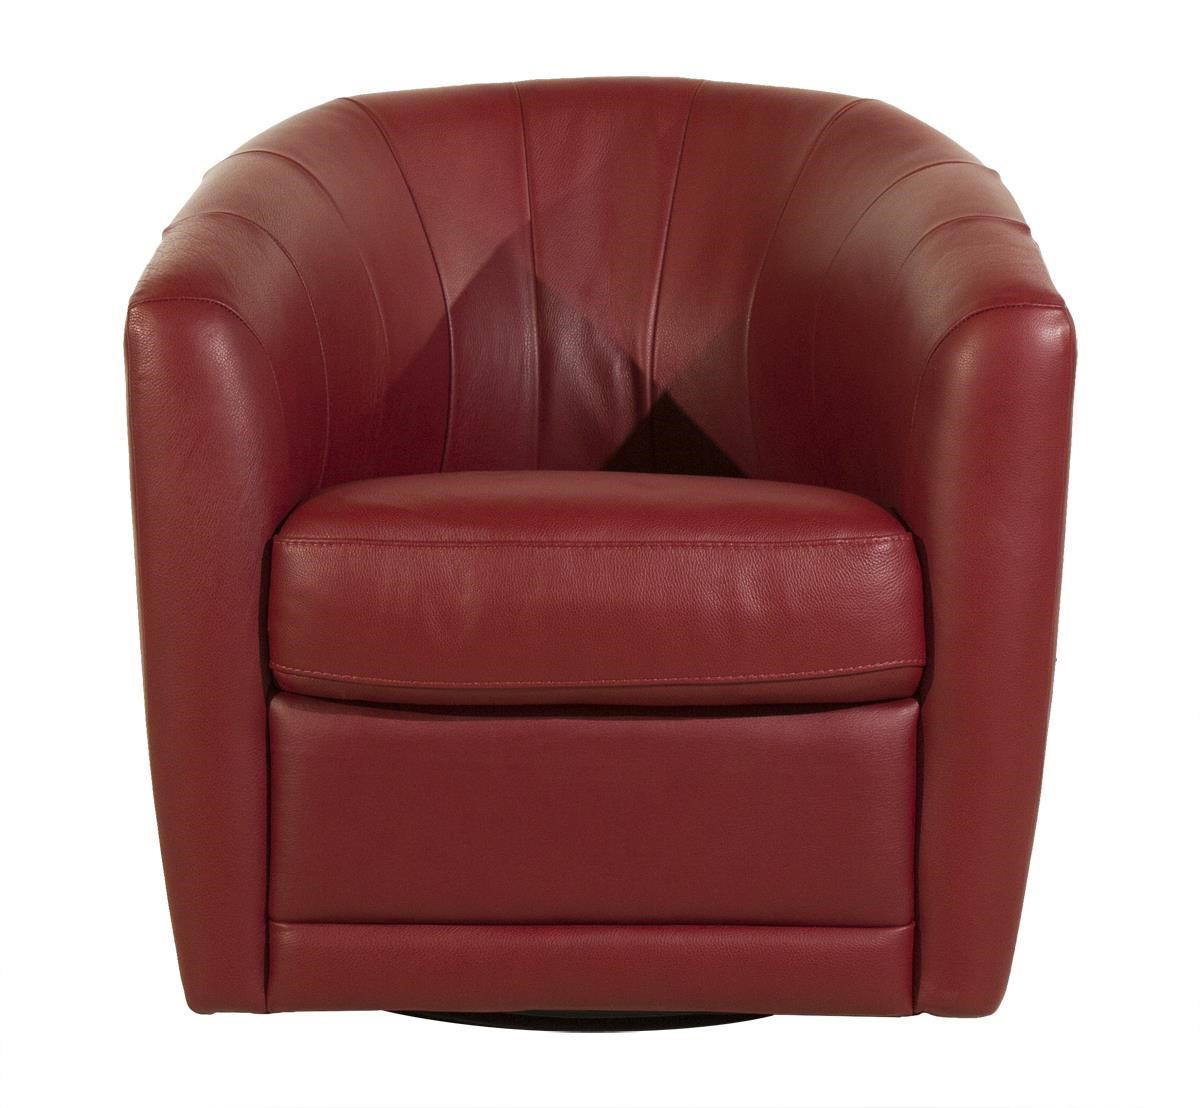 Giada Swivel Chair by Natuzzi Editions at Red Knot